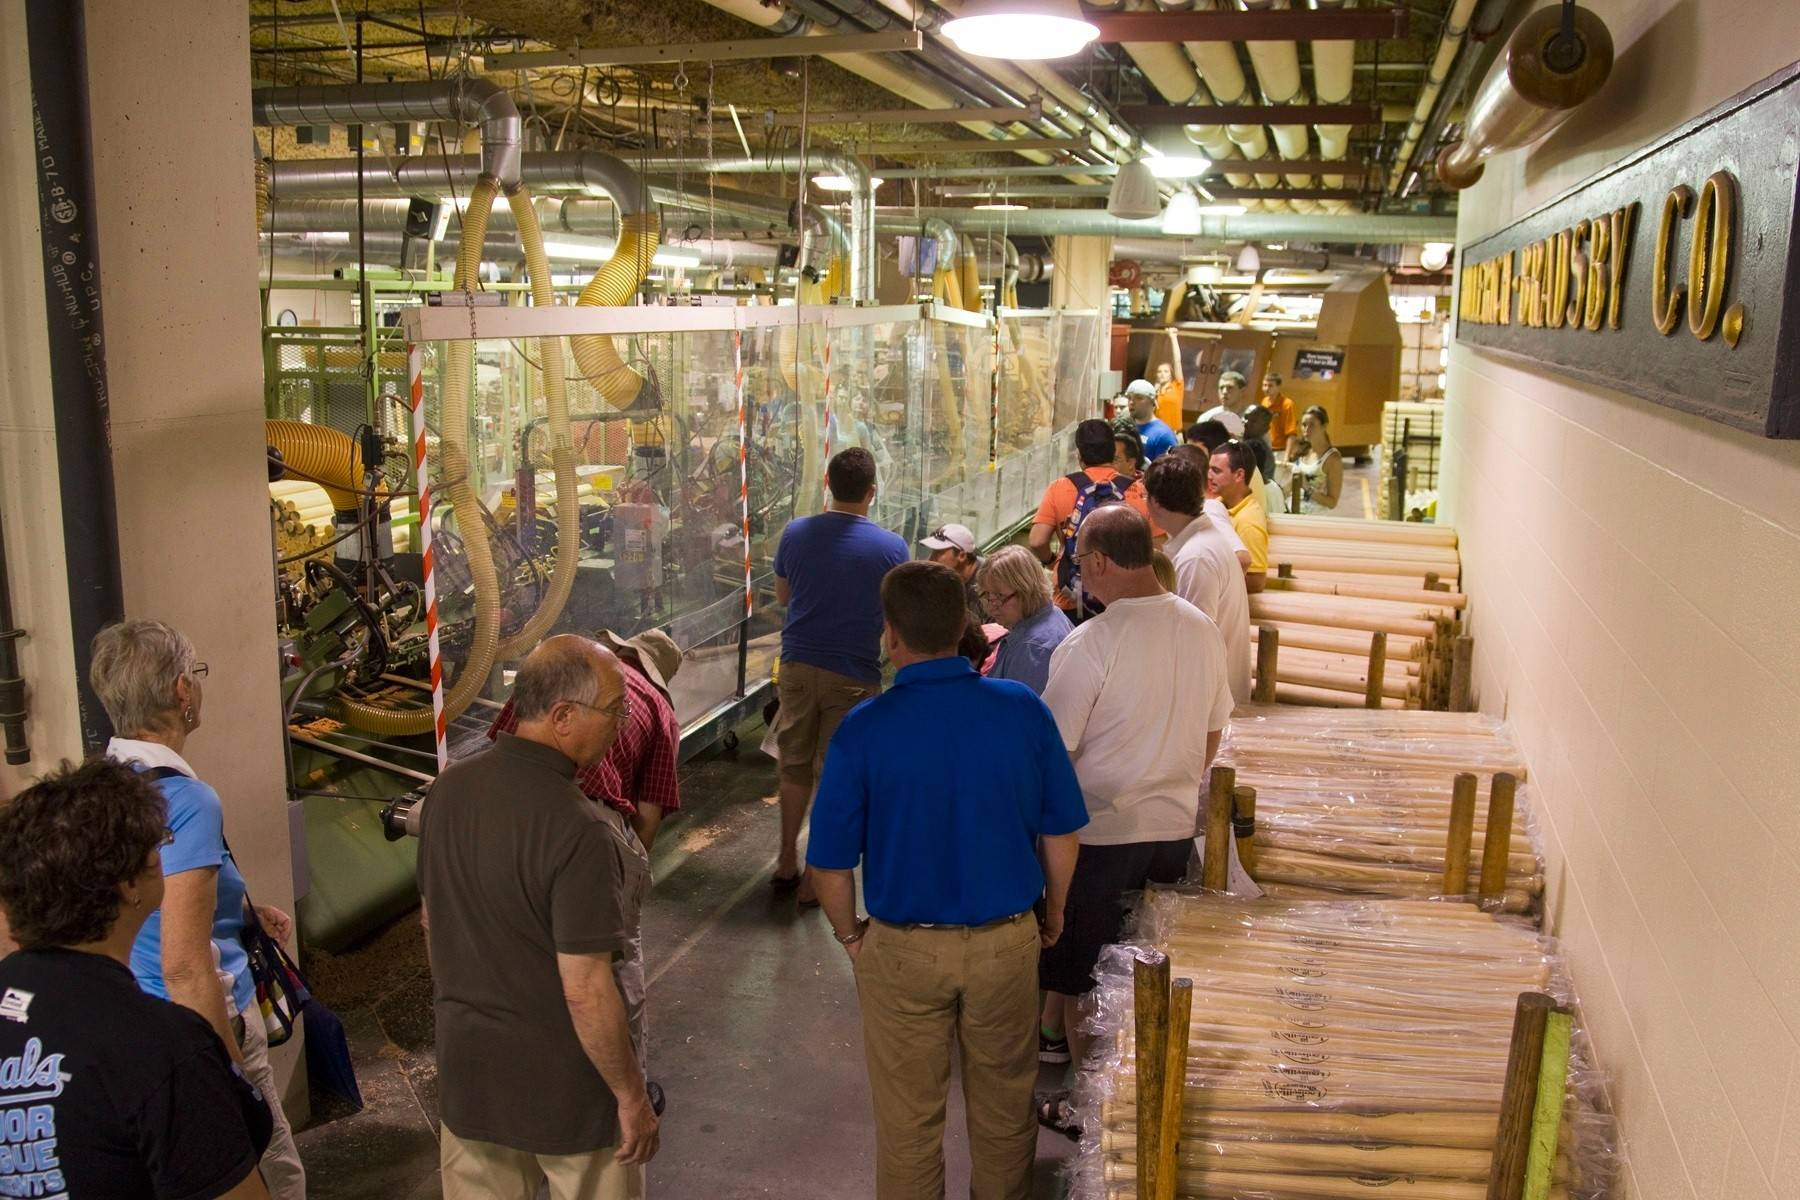 Visitors watch Louisville Slugger bats being made on factory tours.